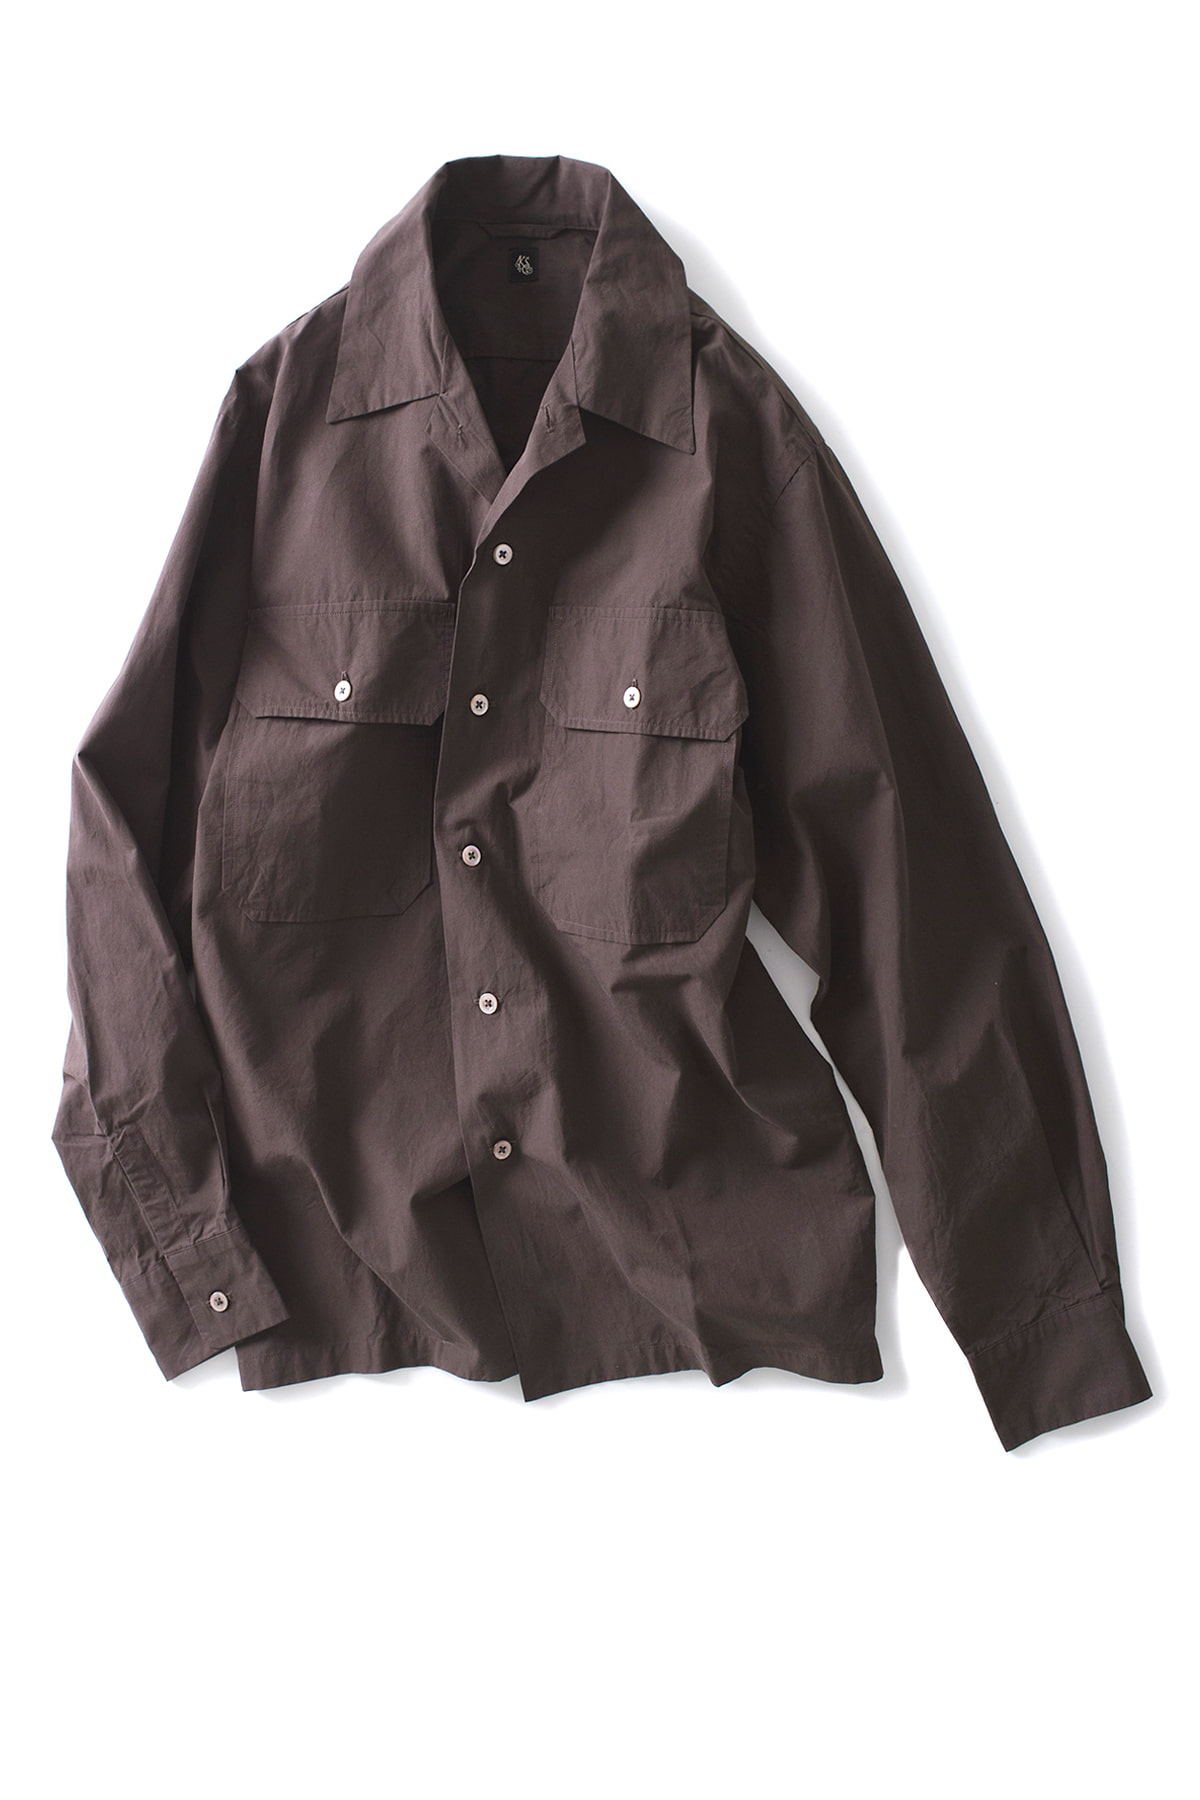 Kaptain Sunshine : Utility Open Collar Shirt (Brown)